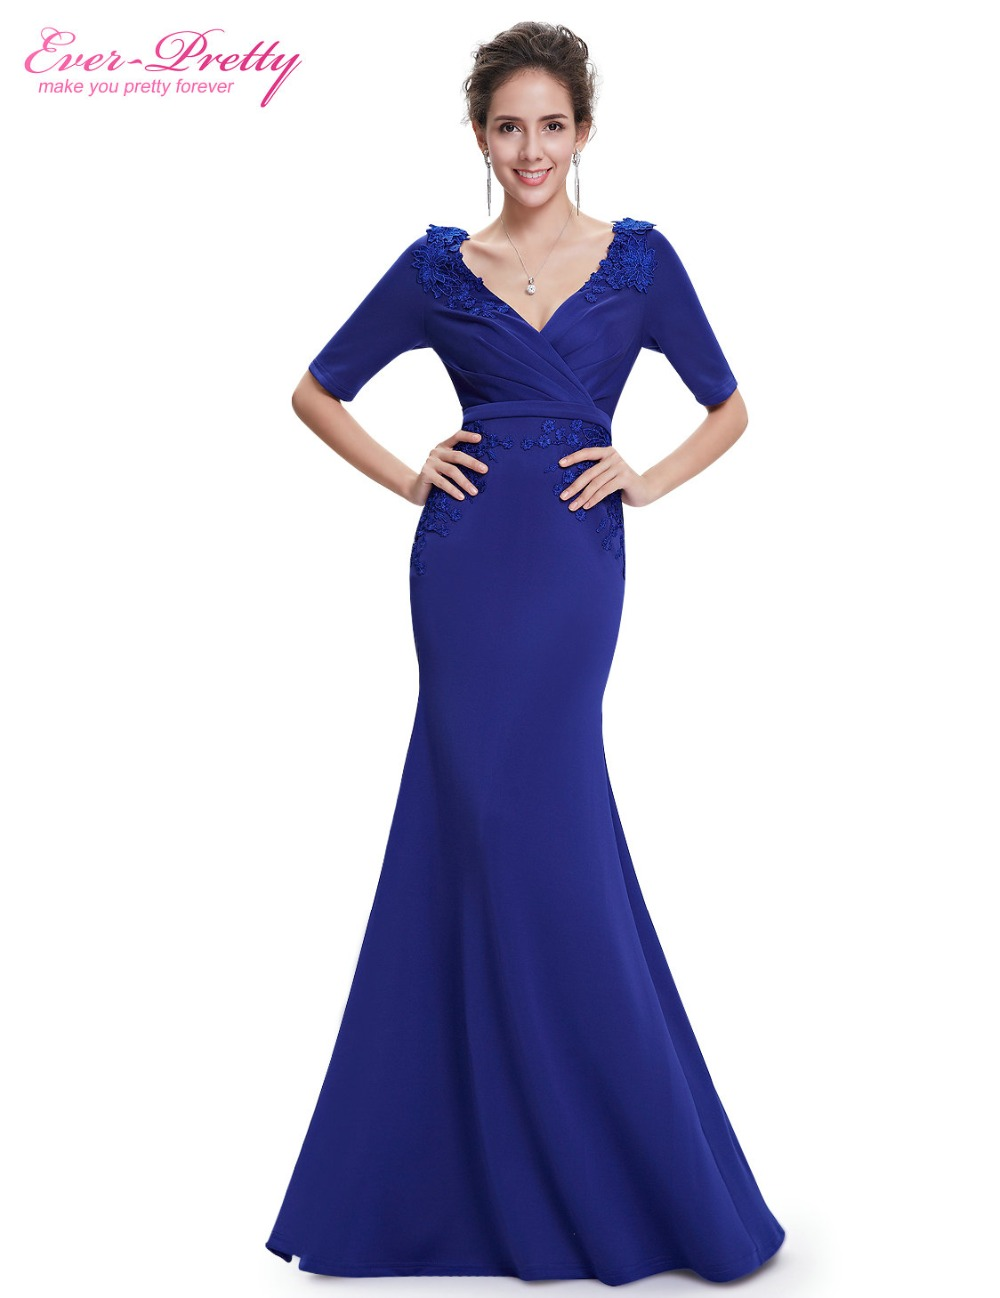 Aliexpress.com   Buy Ever Pretty Evening Dresses Sexy Sapphire Blue V neck  Half Sleeve Fishtail Long Evening Party Dress XXBS73680EHA from Reliable  evening ... 0b0dcc4a0